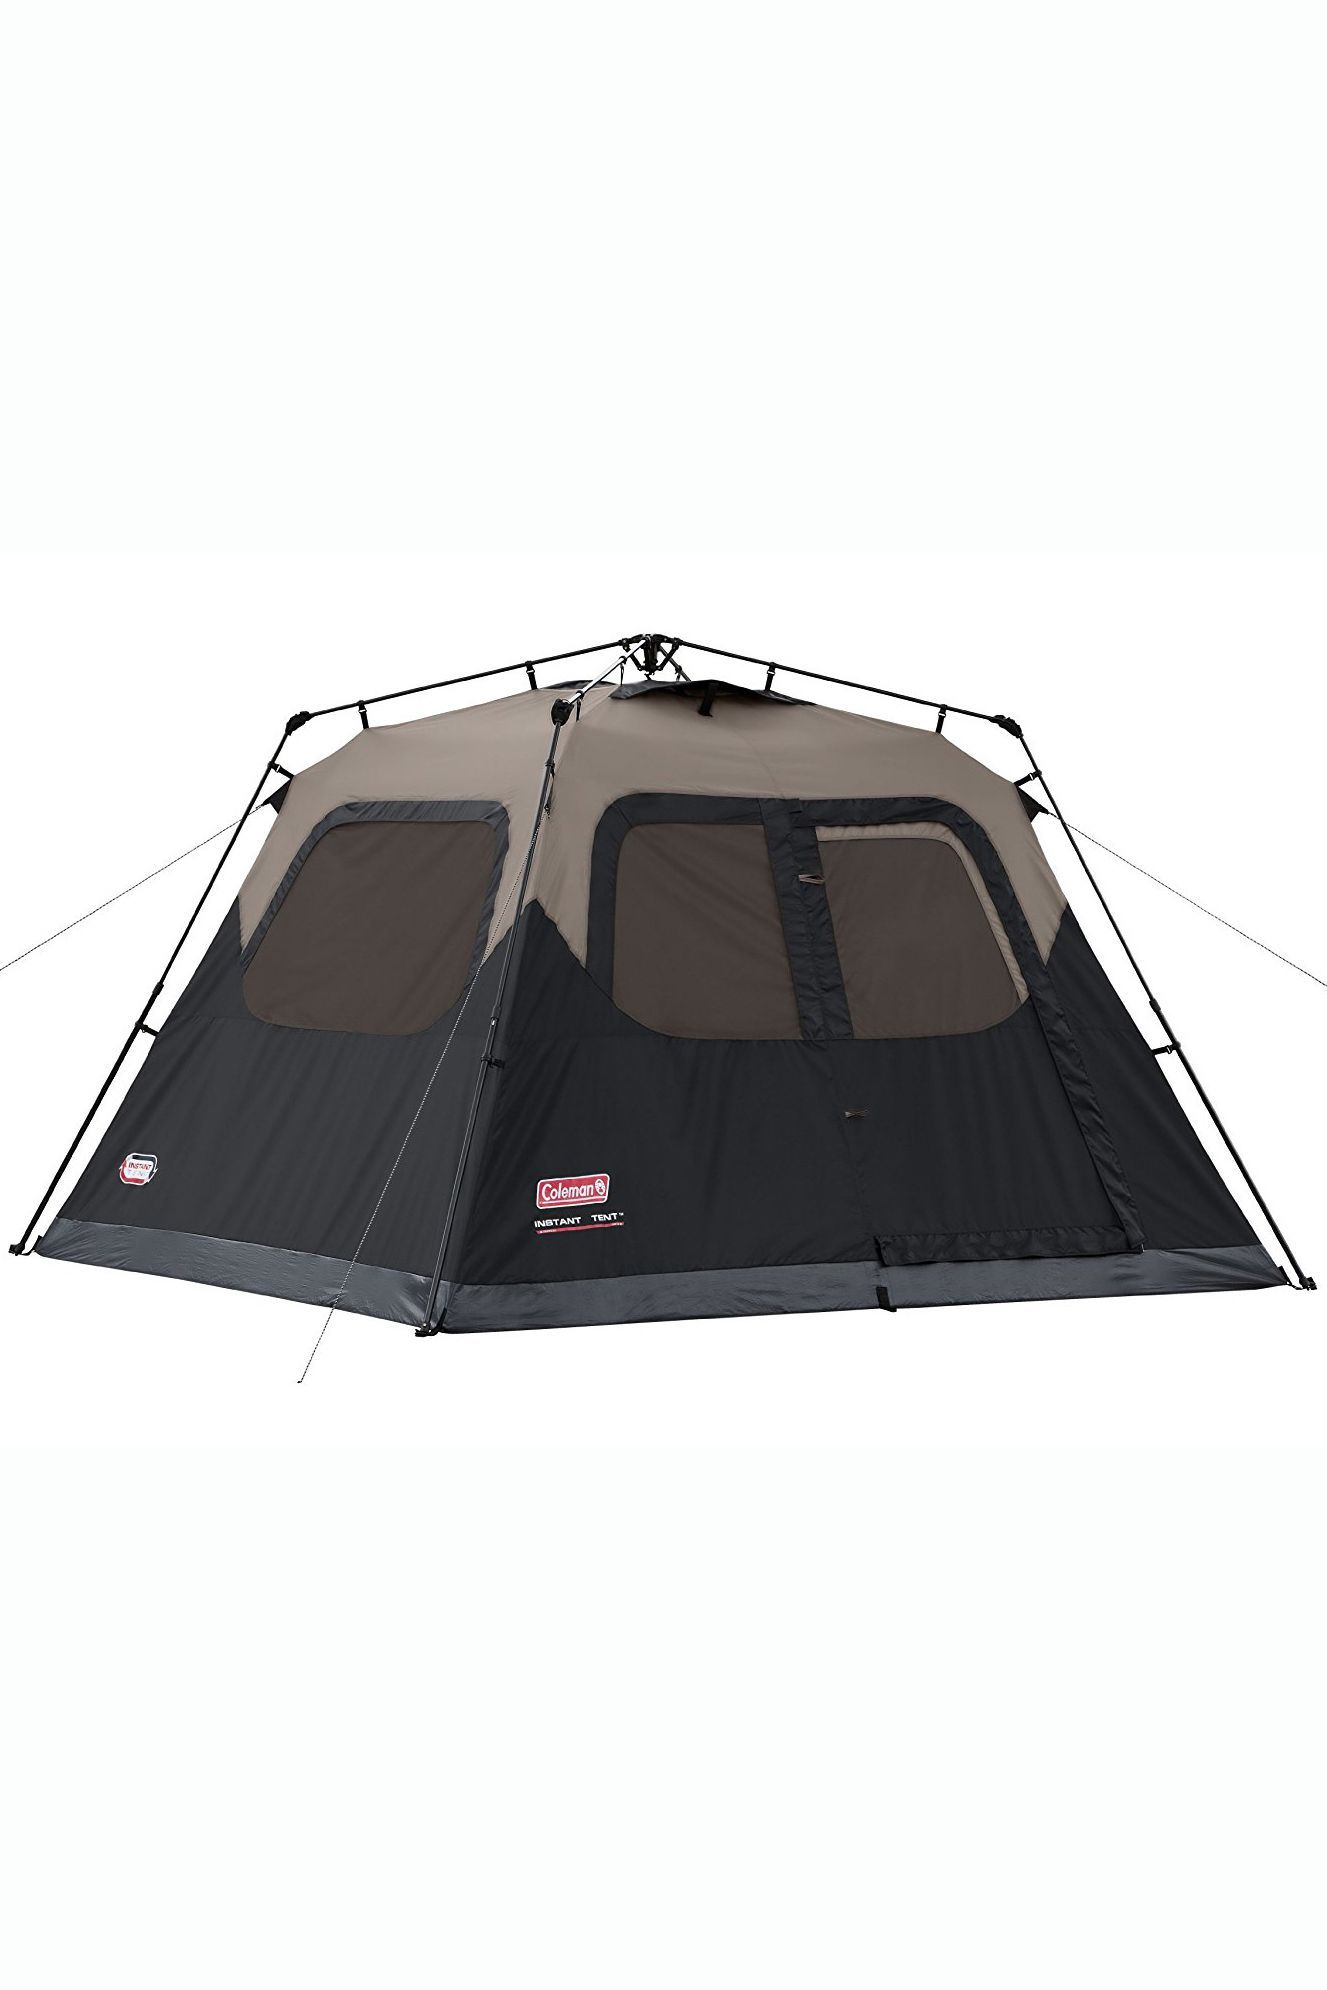 sc 1 st  Country Living Magazine & 16 Best Camping Tents - Top Rated Family Camping Tents